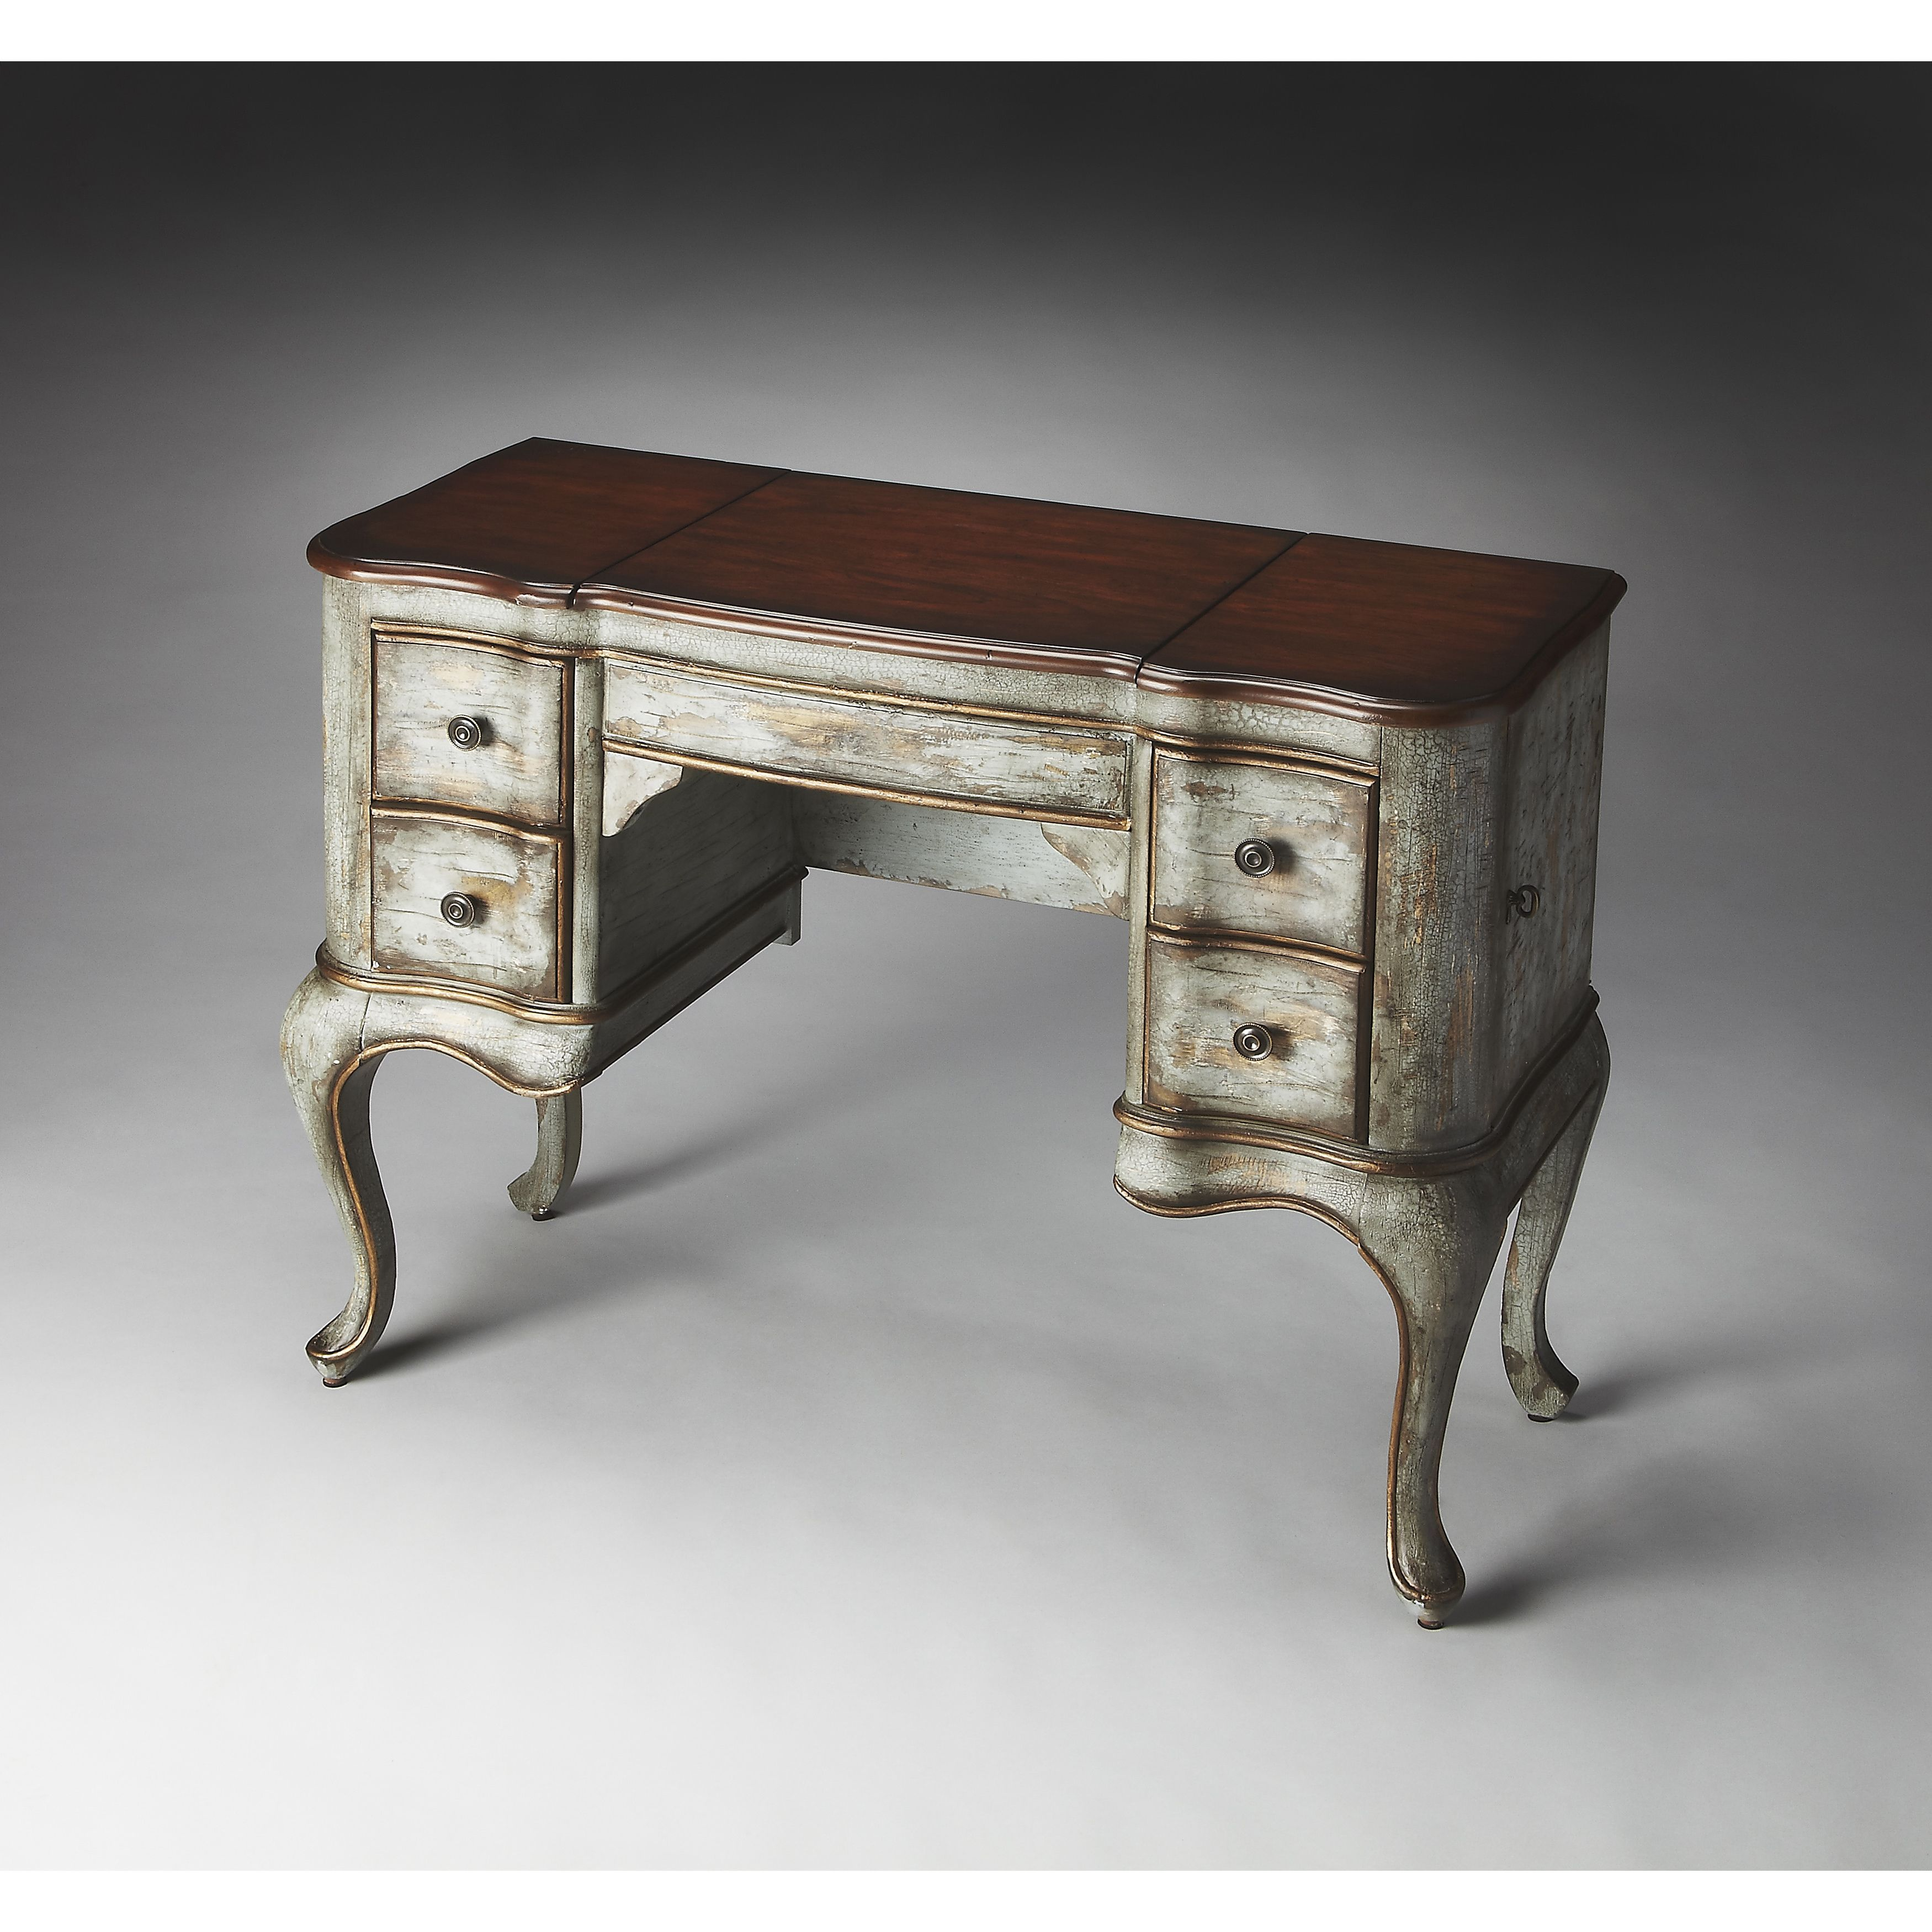 Add a creative classic accent piece to your home or office with